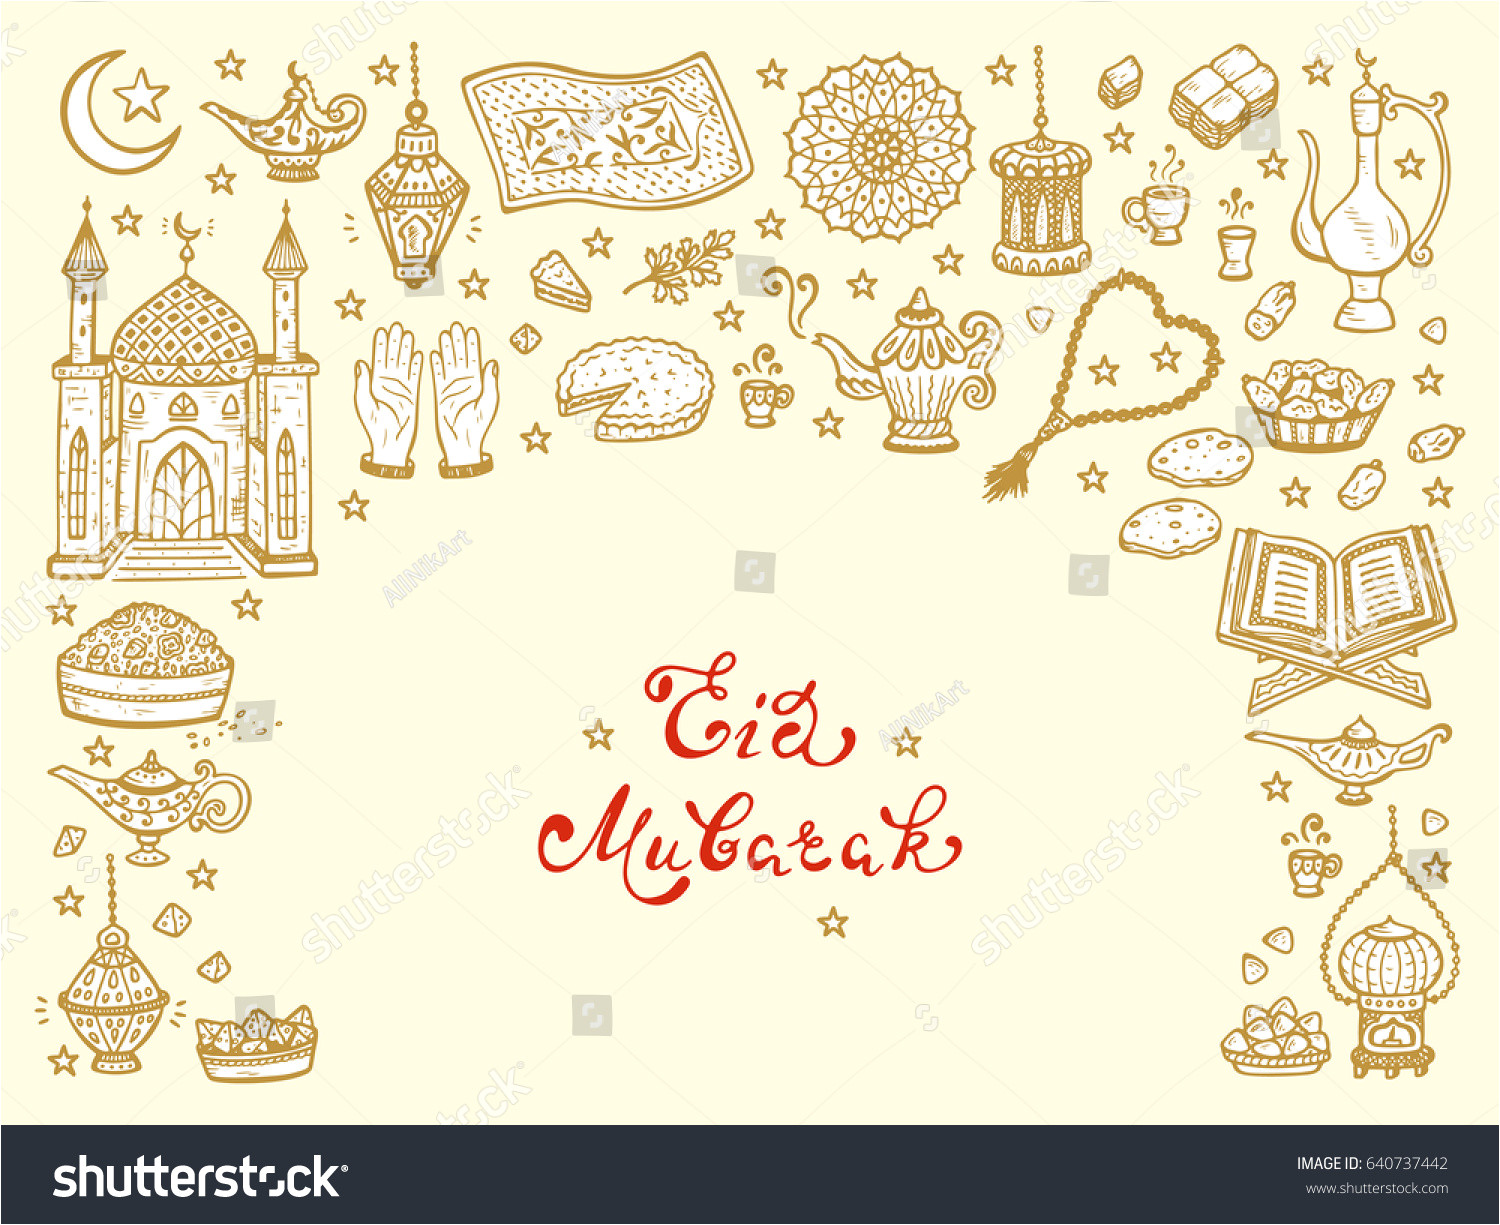 stock vector eid mubarak calligraphy lettering phrase and doodle traditional arabic items greeting card 640737442 jpg